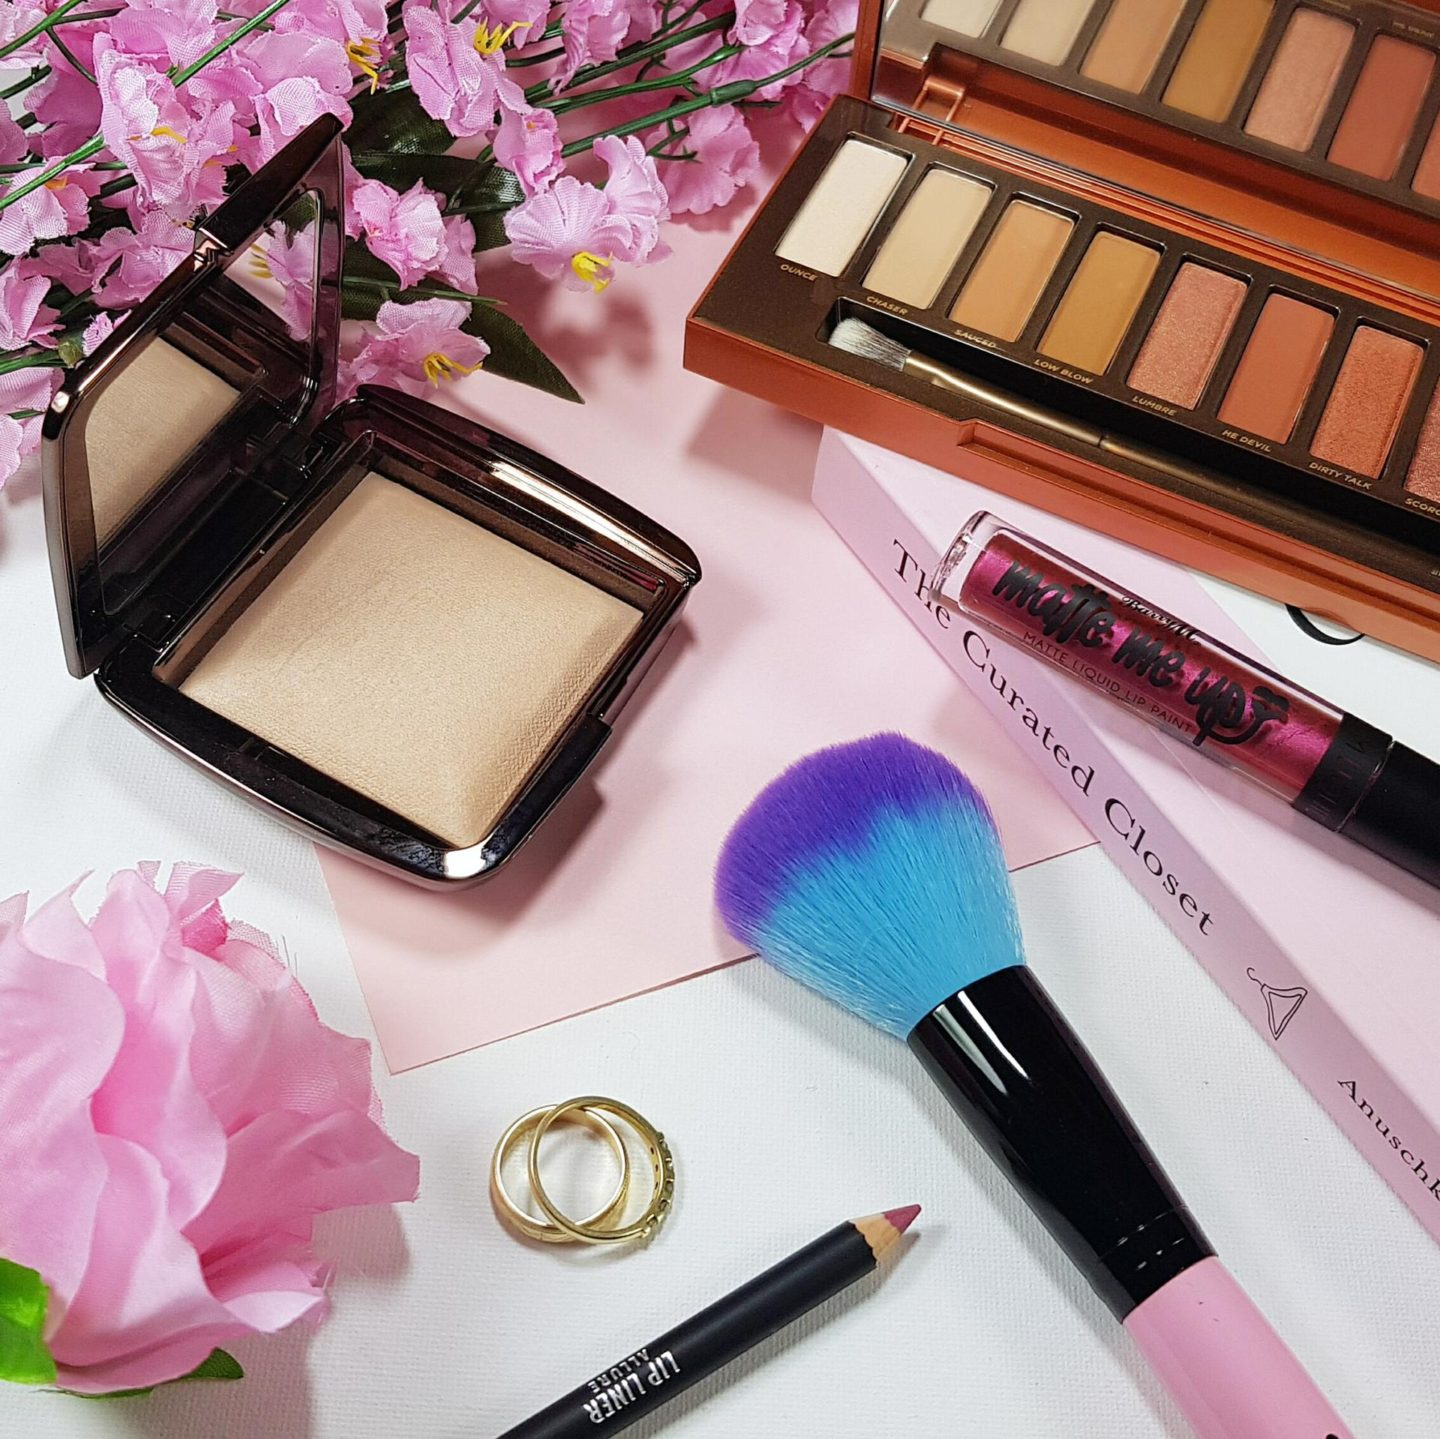 flowers, makeup and makeup brush